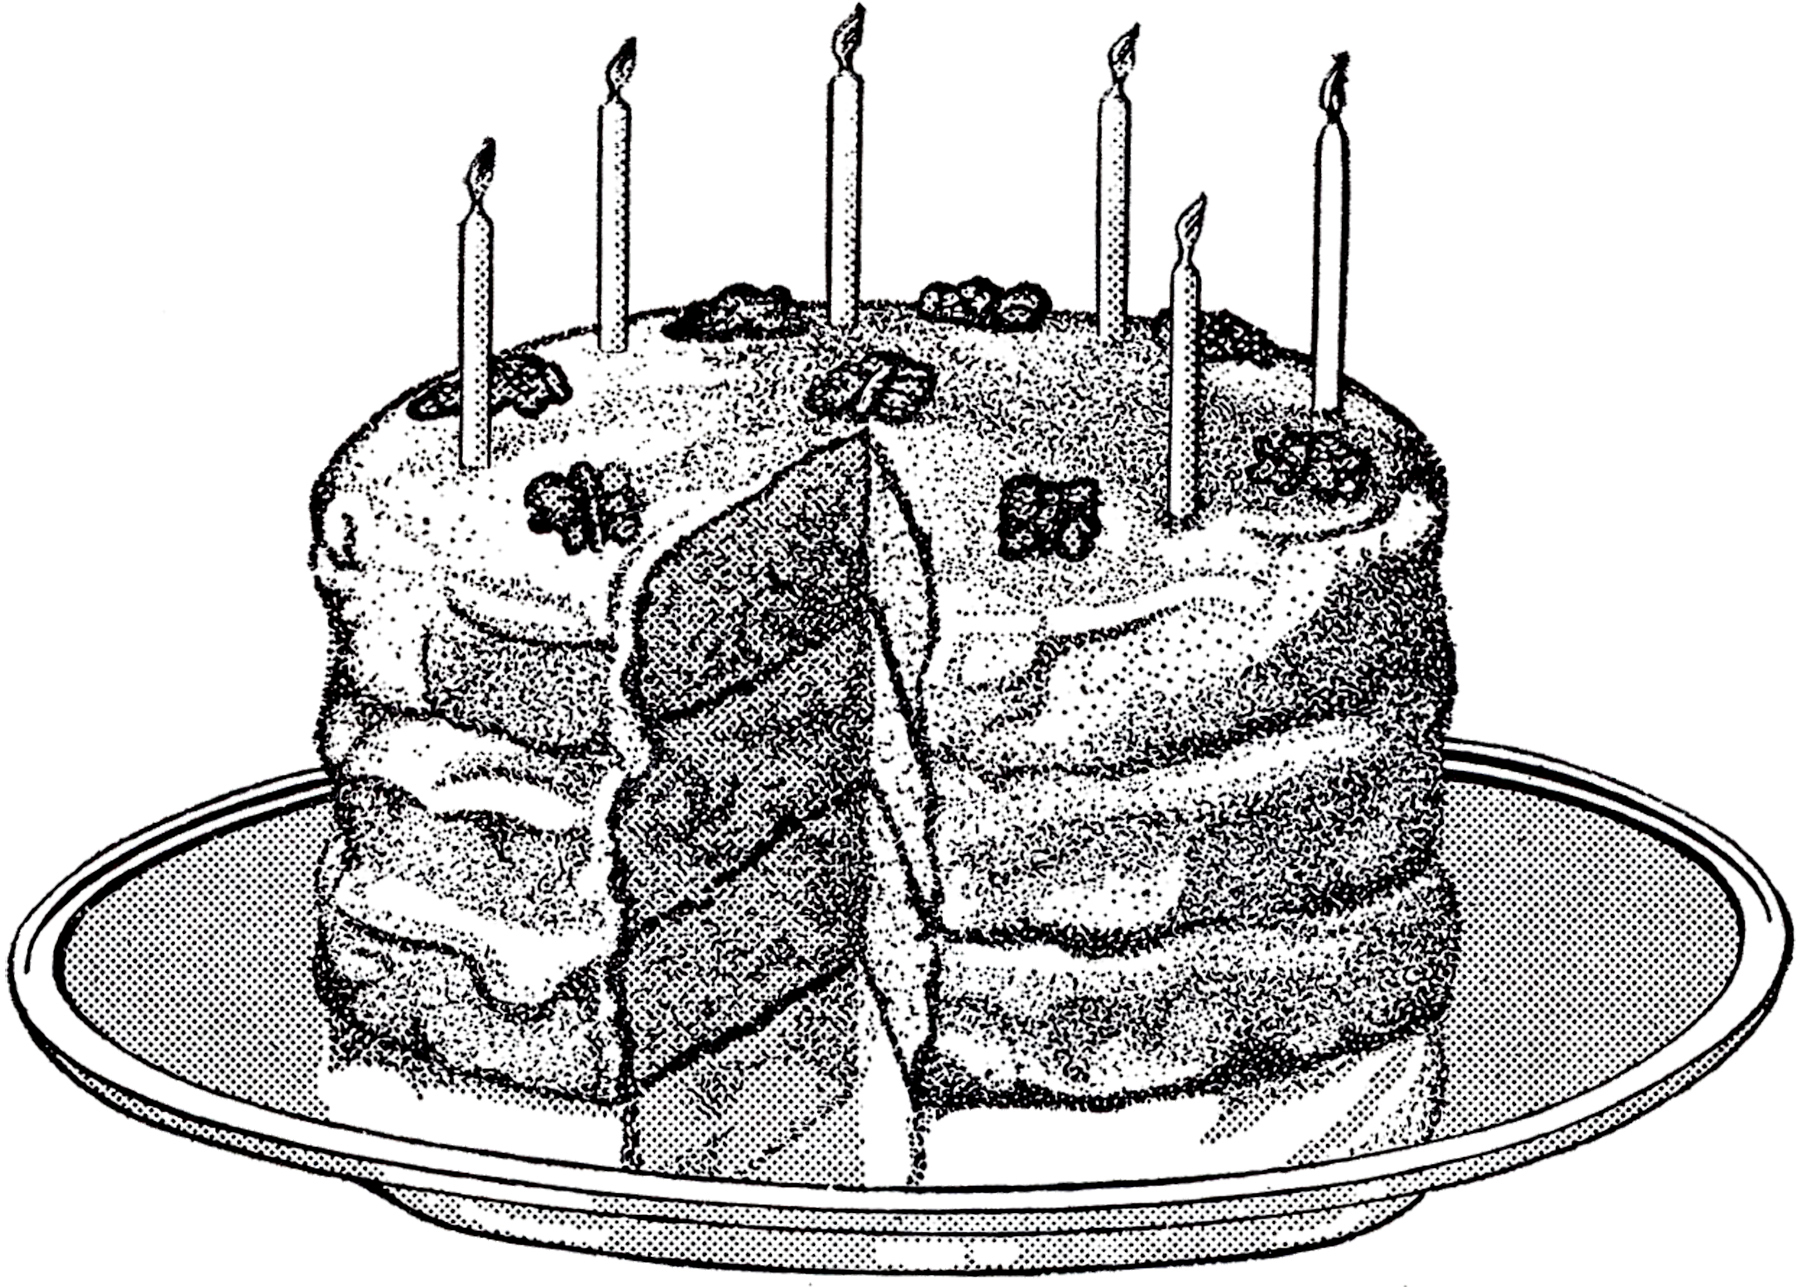 Vintage birthday cake clipart image transparent download Vintage Birthday Cake Image! - The Graphics Fairy image transparent download